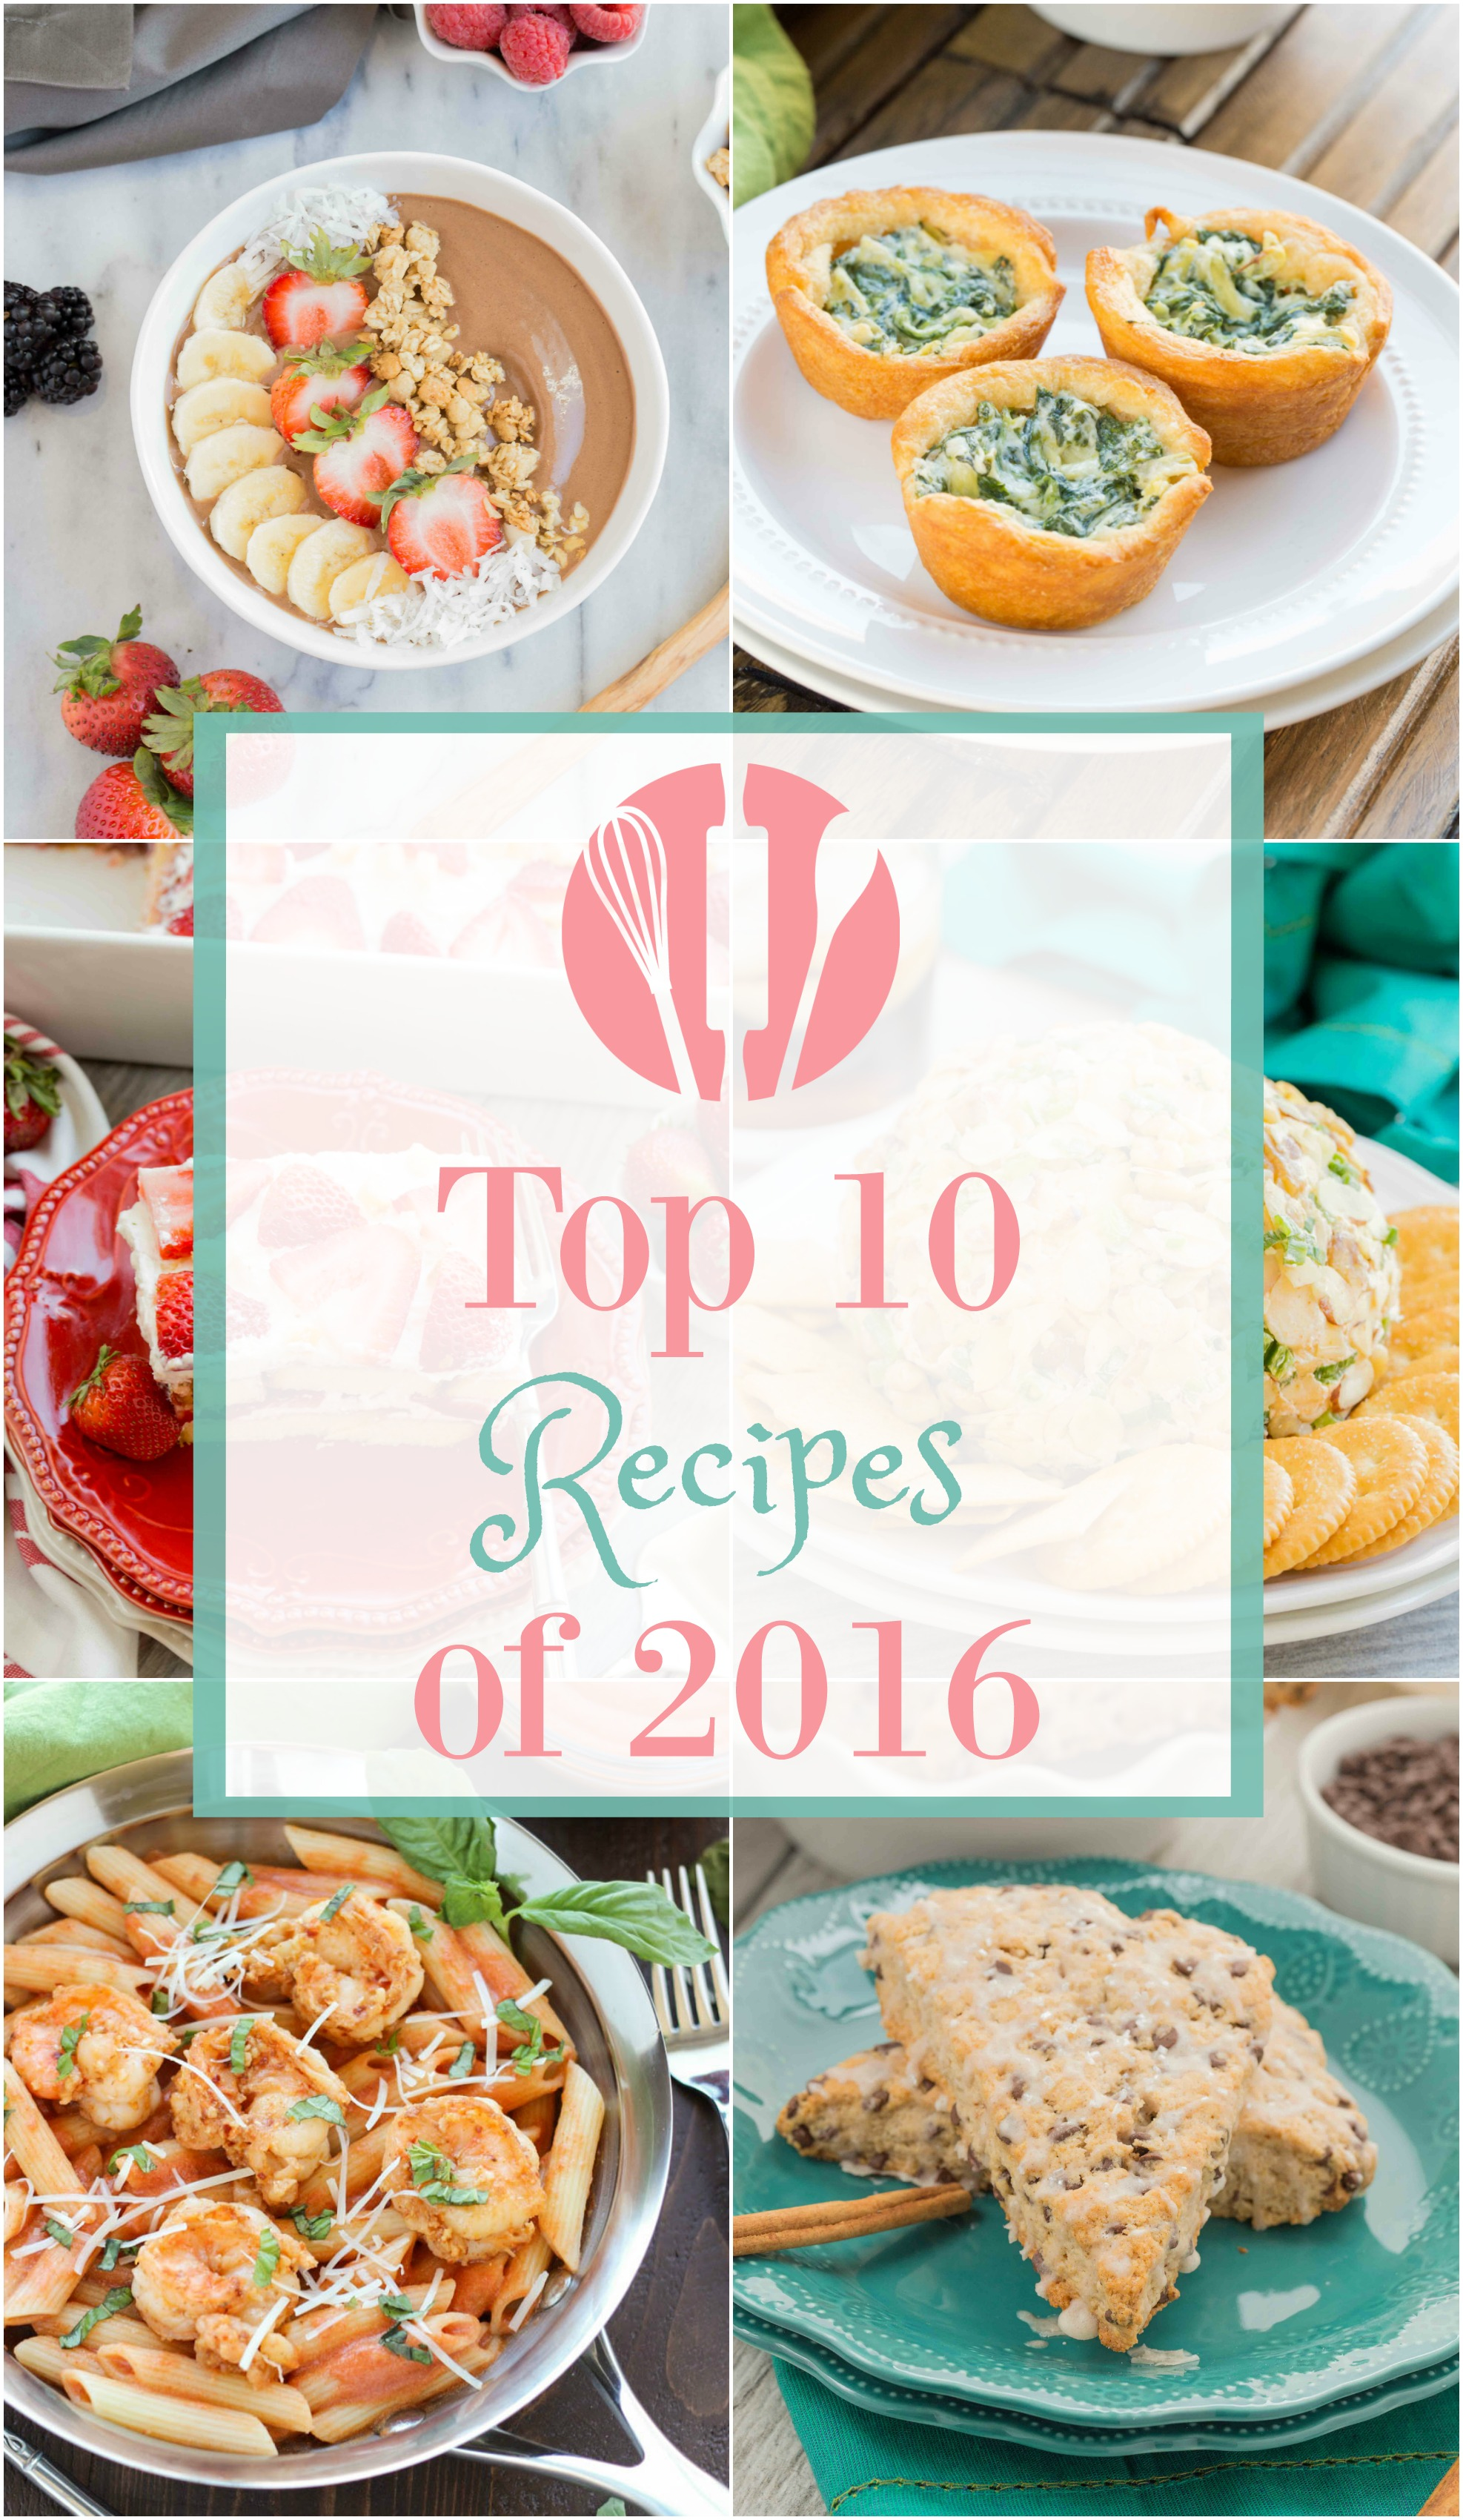 Top 10 Recipes of 2016 - My Kitchen Craze